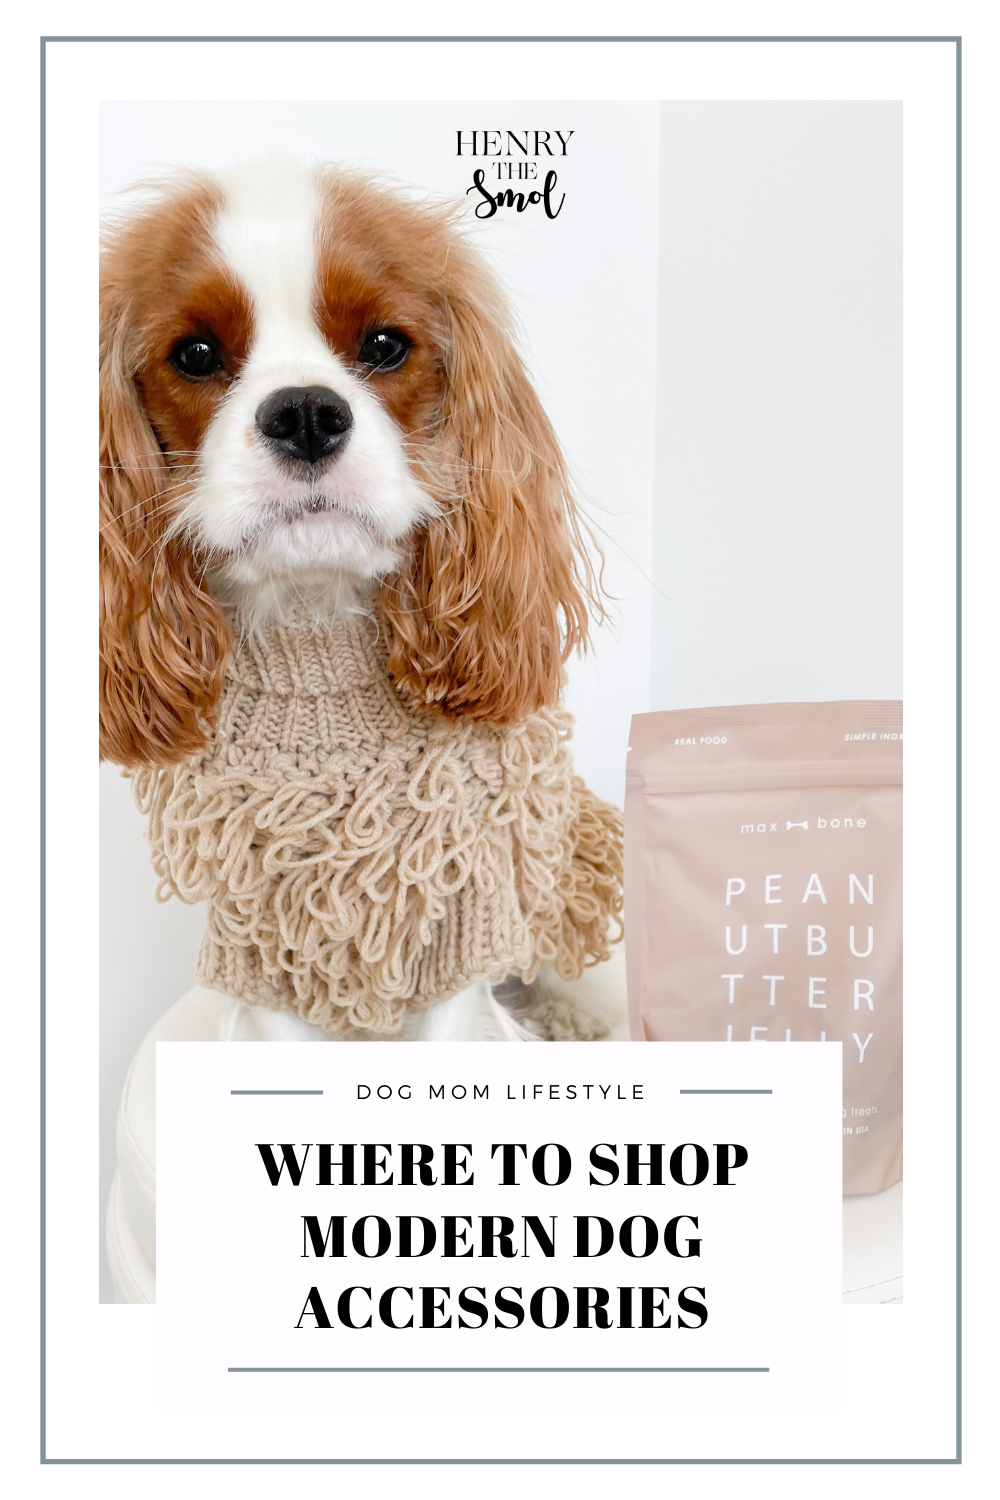 The Best Dog Brands for Stylish Dog Moms